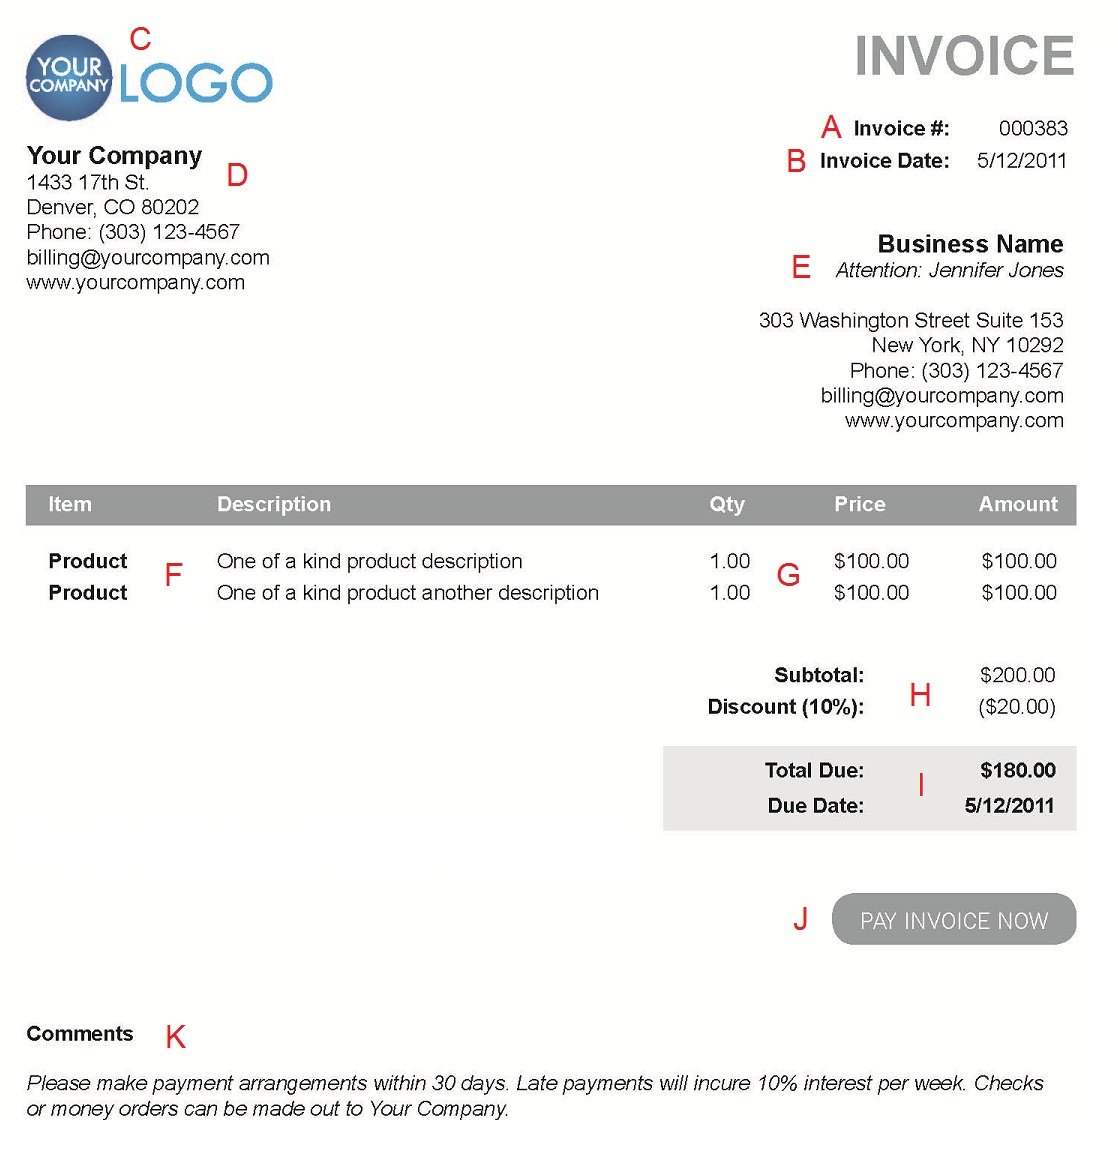 Opposenewapstandardsus  Fascinating The  Different Sections Of An Electronic Payment Invoice With Foxy A  With Alluring Invoice Templet Also Contractors Invoice In Addition Billing Invoices And Auto Invoice Prices As Well As Factory Invoice Vs Msrp Additionally Invoices For Business From Paysimplecom With Opposenewapstandardsus  Foxy The  Different Sections Of An Electronic Payment Invoice With Alluring A  And Fascinating Invoice Templet Also Contractors Invoice In Addition Billing Invoices From Paysimplecom